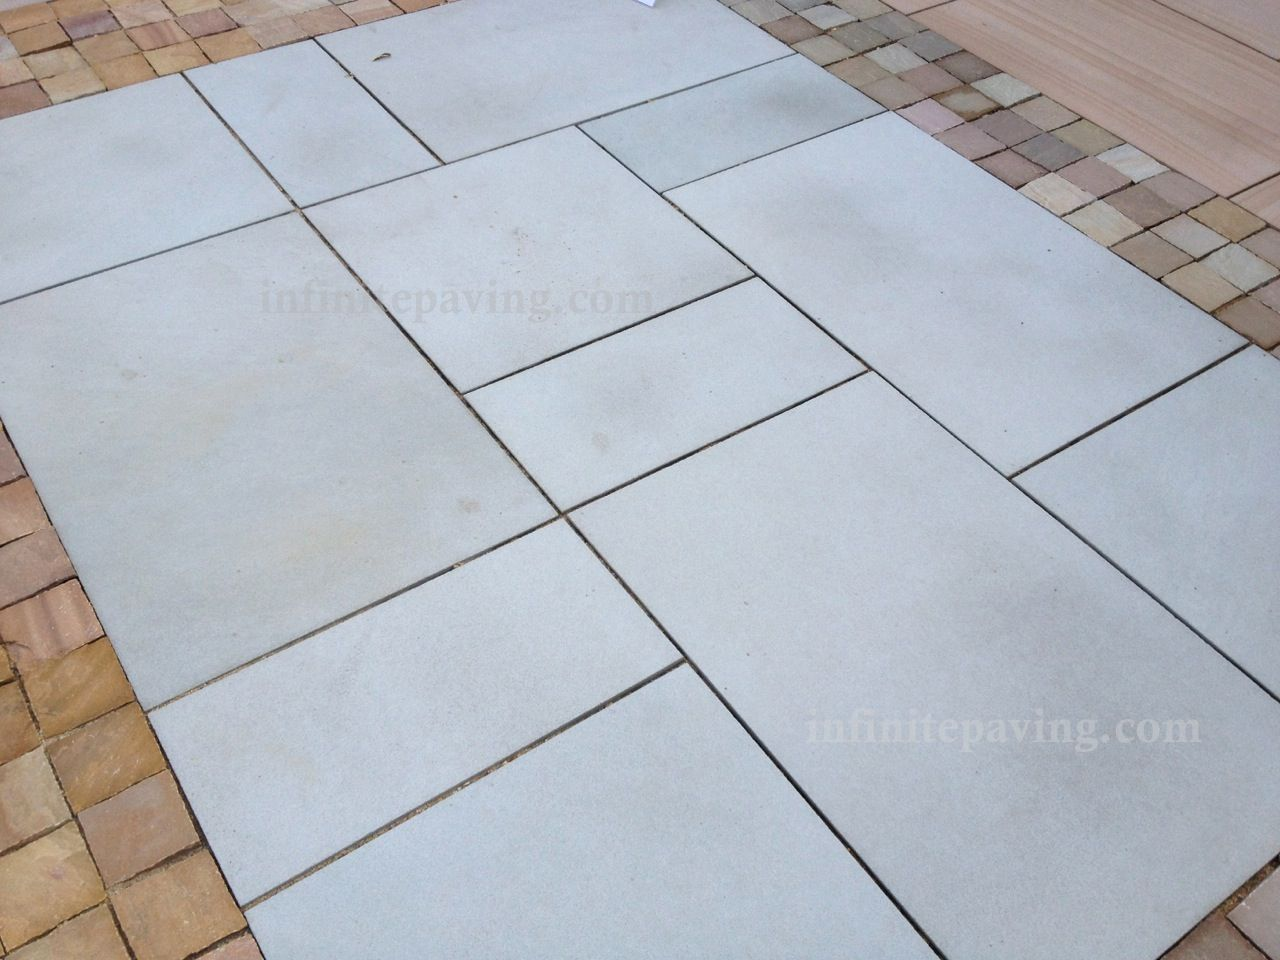 Infinitepaving high quality natural stone paving indian sandstone indian sandstone paving free uk delivery dailygadgetfo Image collections